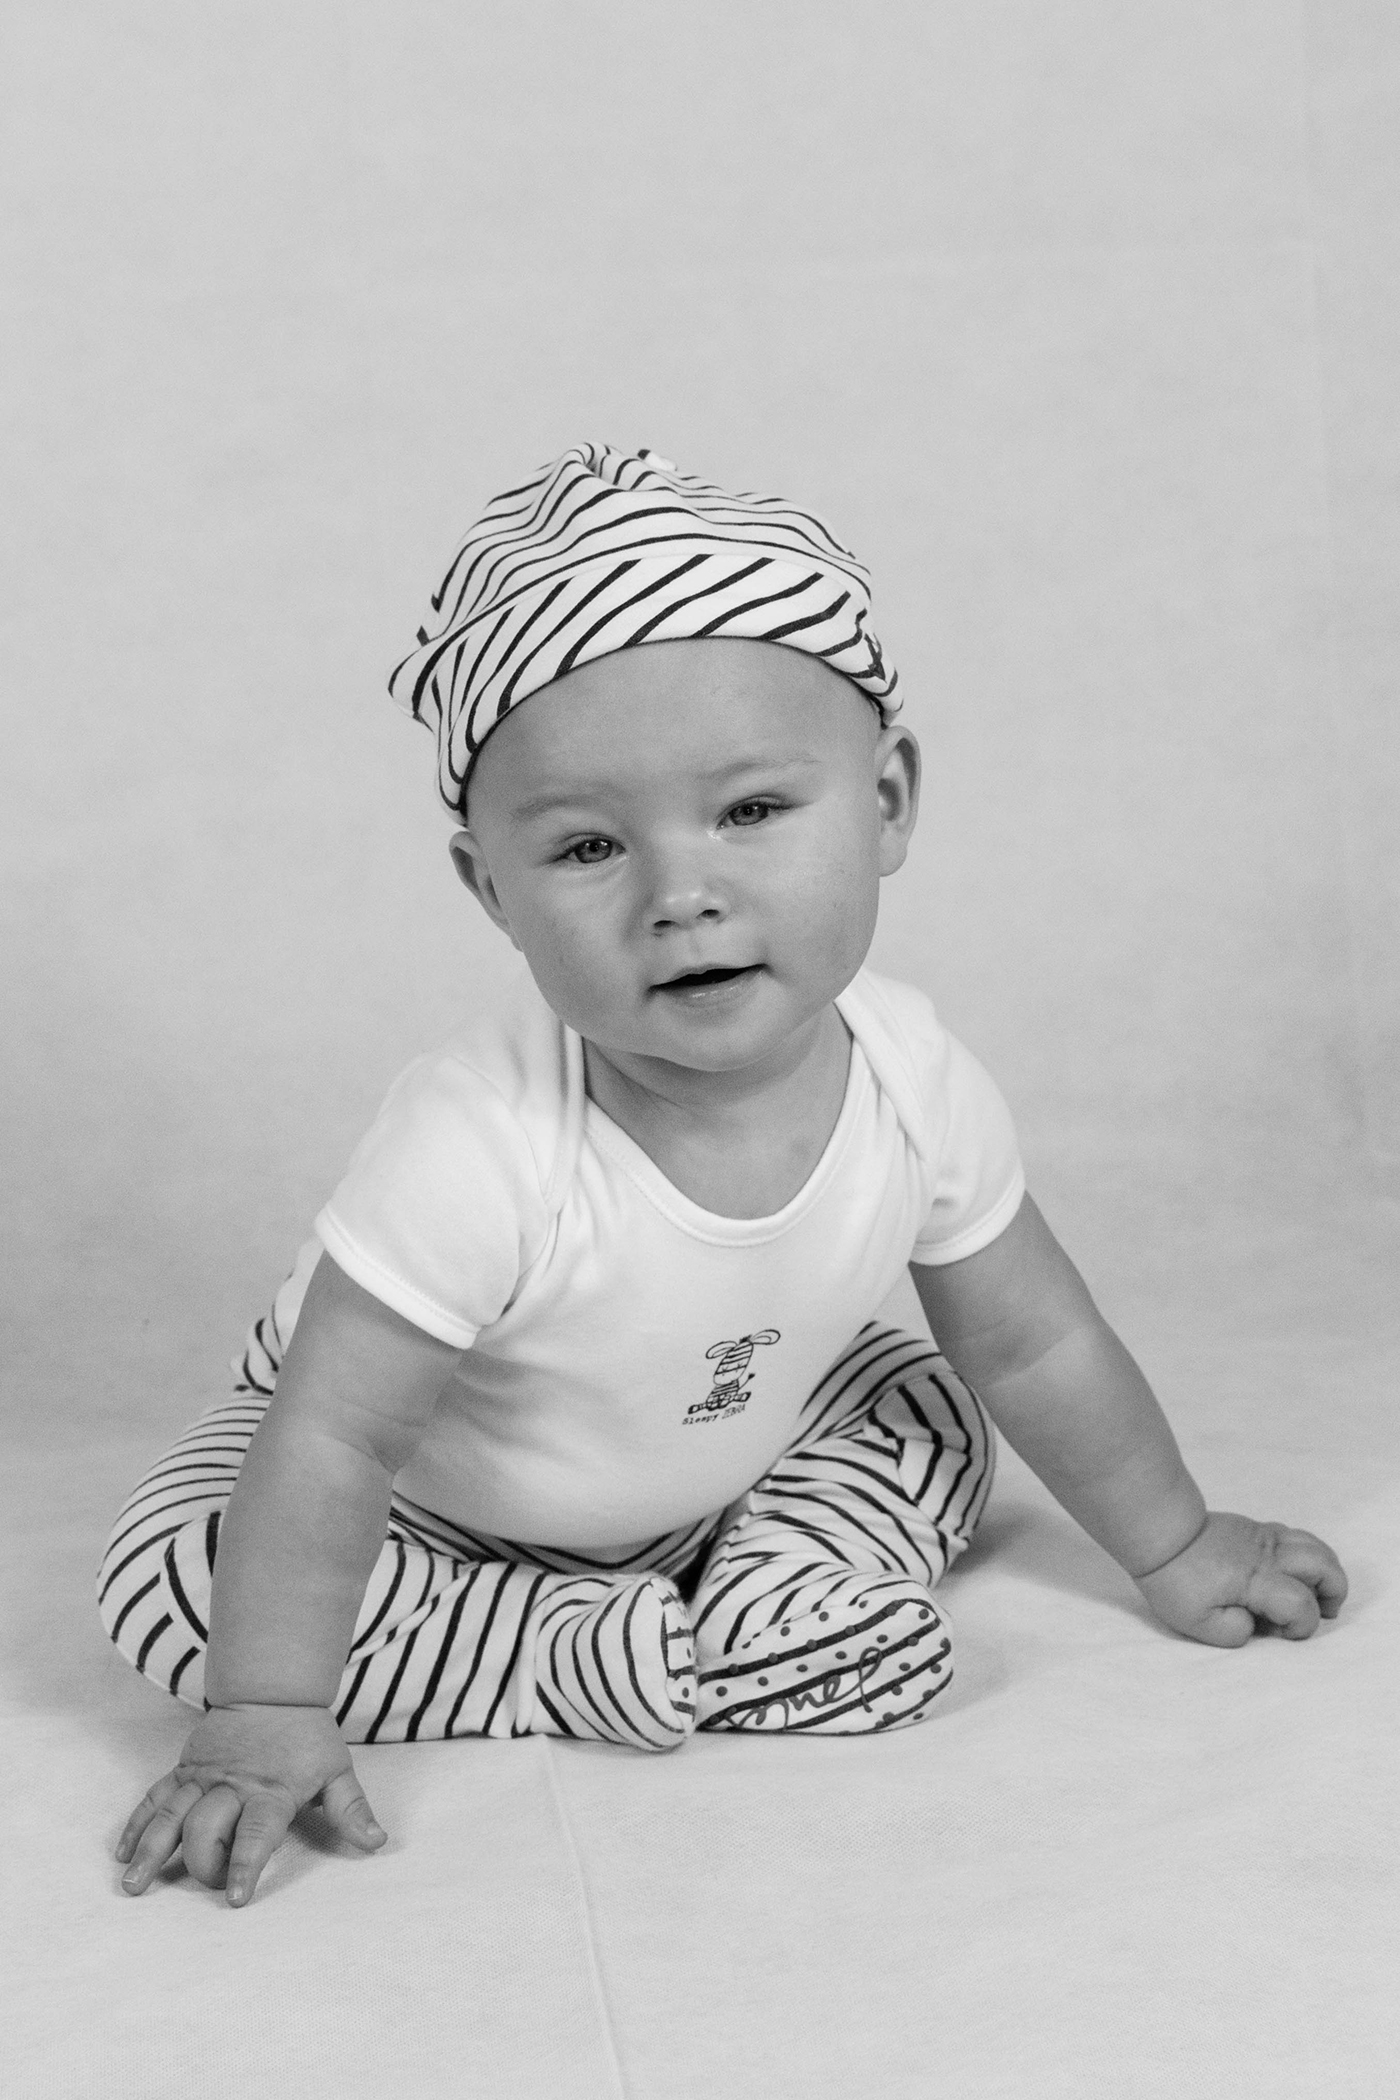 A wonderful little boy, at our on home toddler photography session in black and white finish